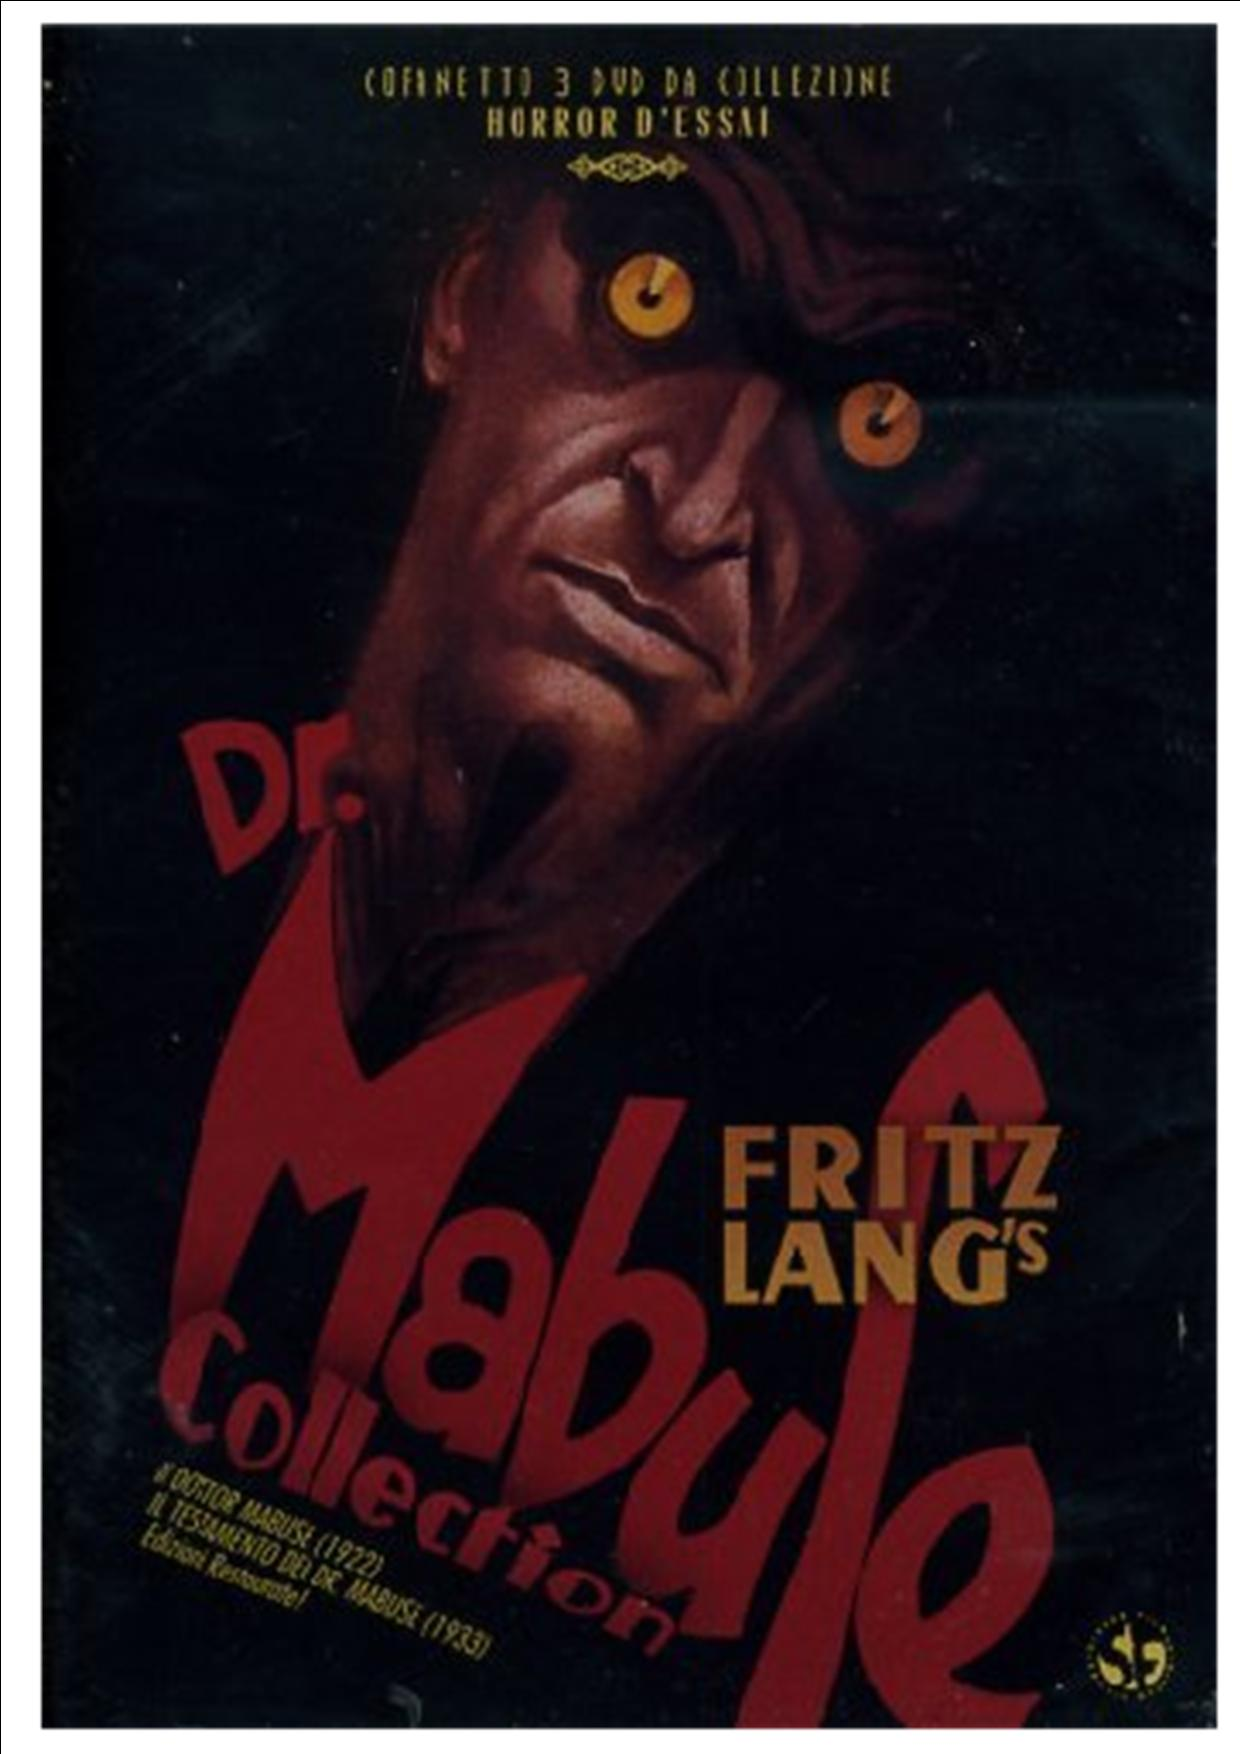 COF.DR. MABUSE COLLECTION FRITZ LANG (3DVD) (DVD)